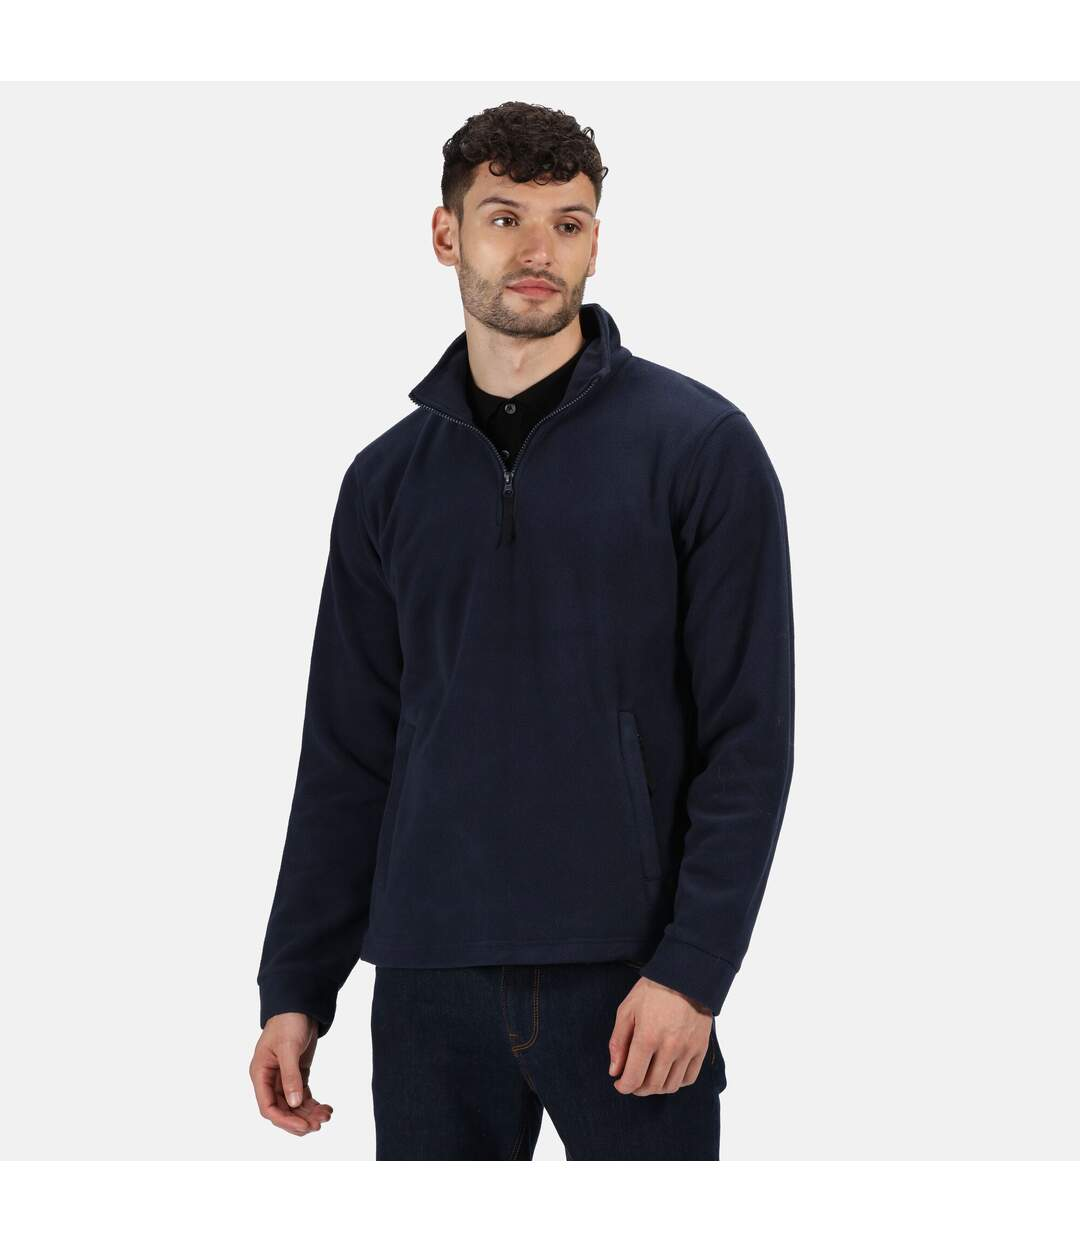 Regatta Great Outdoors Unisex Thor Overhead Half Zip Anti-Pill Fleece Sweater (170 GSM) (Dark Navy) - UTRG1842